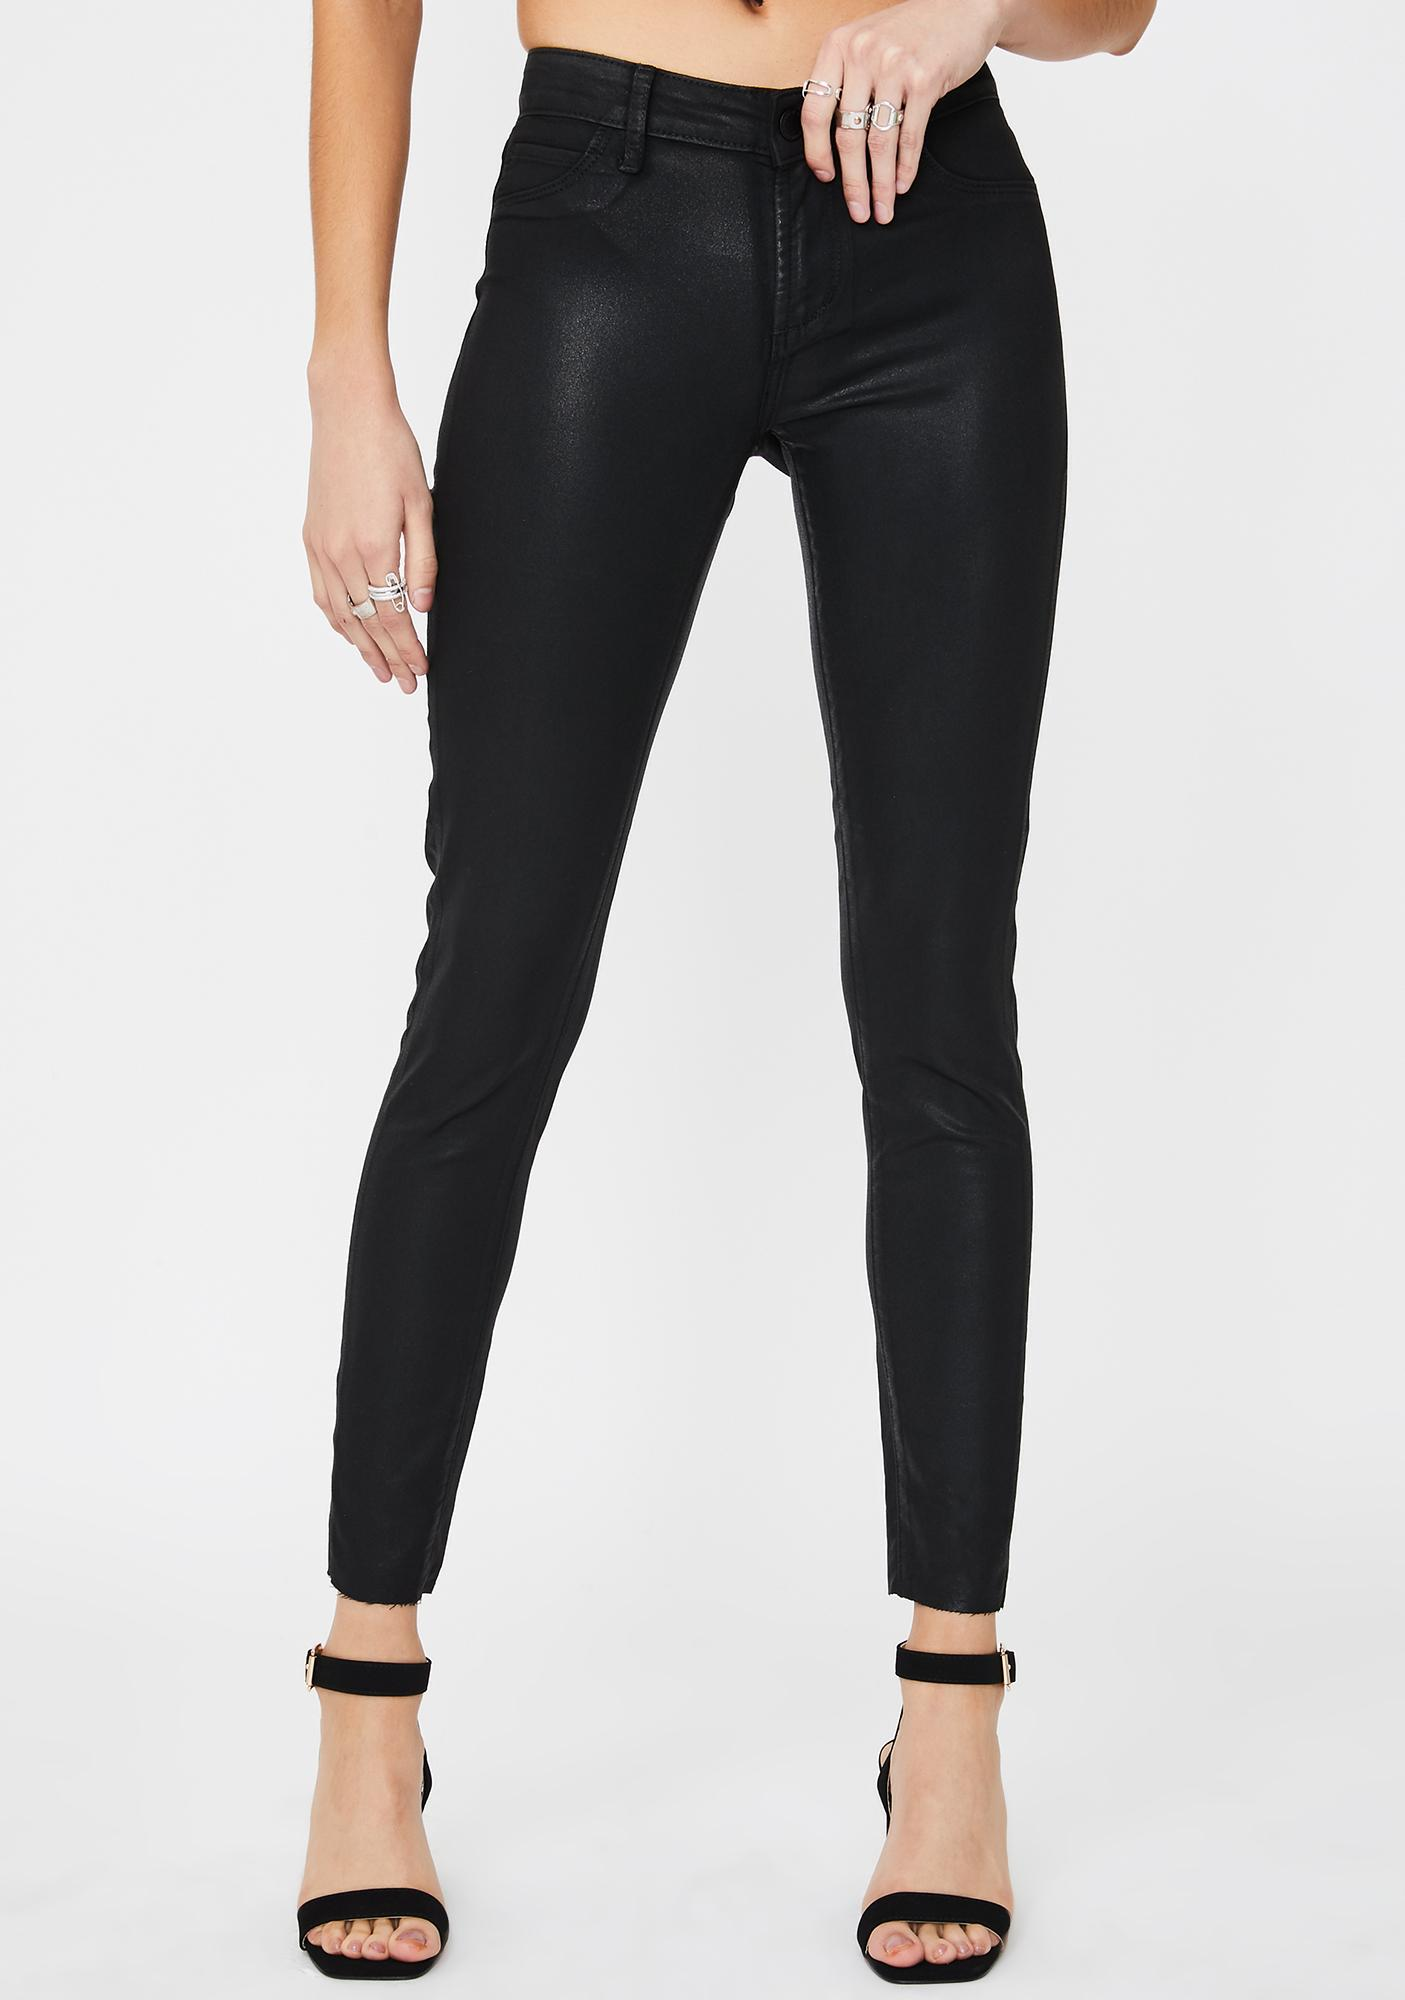 Articles of Society Bryce Sarah Skinny Jeans